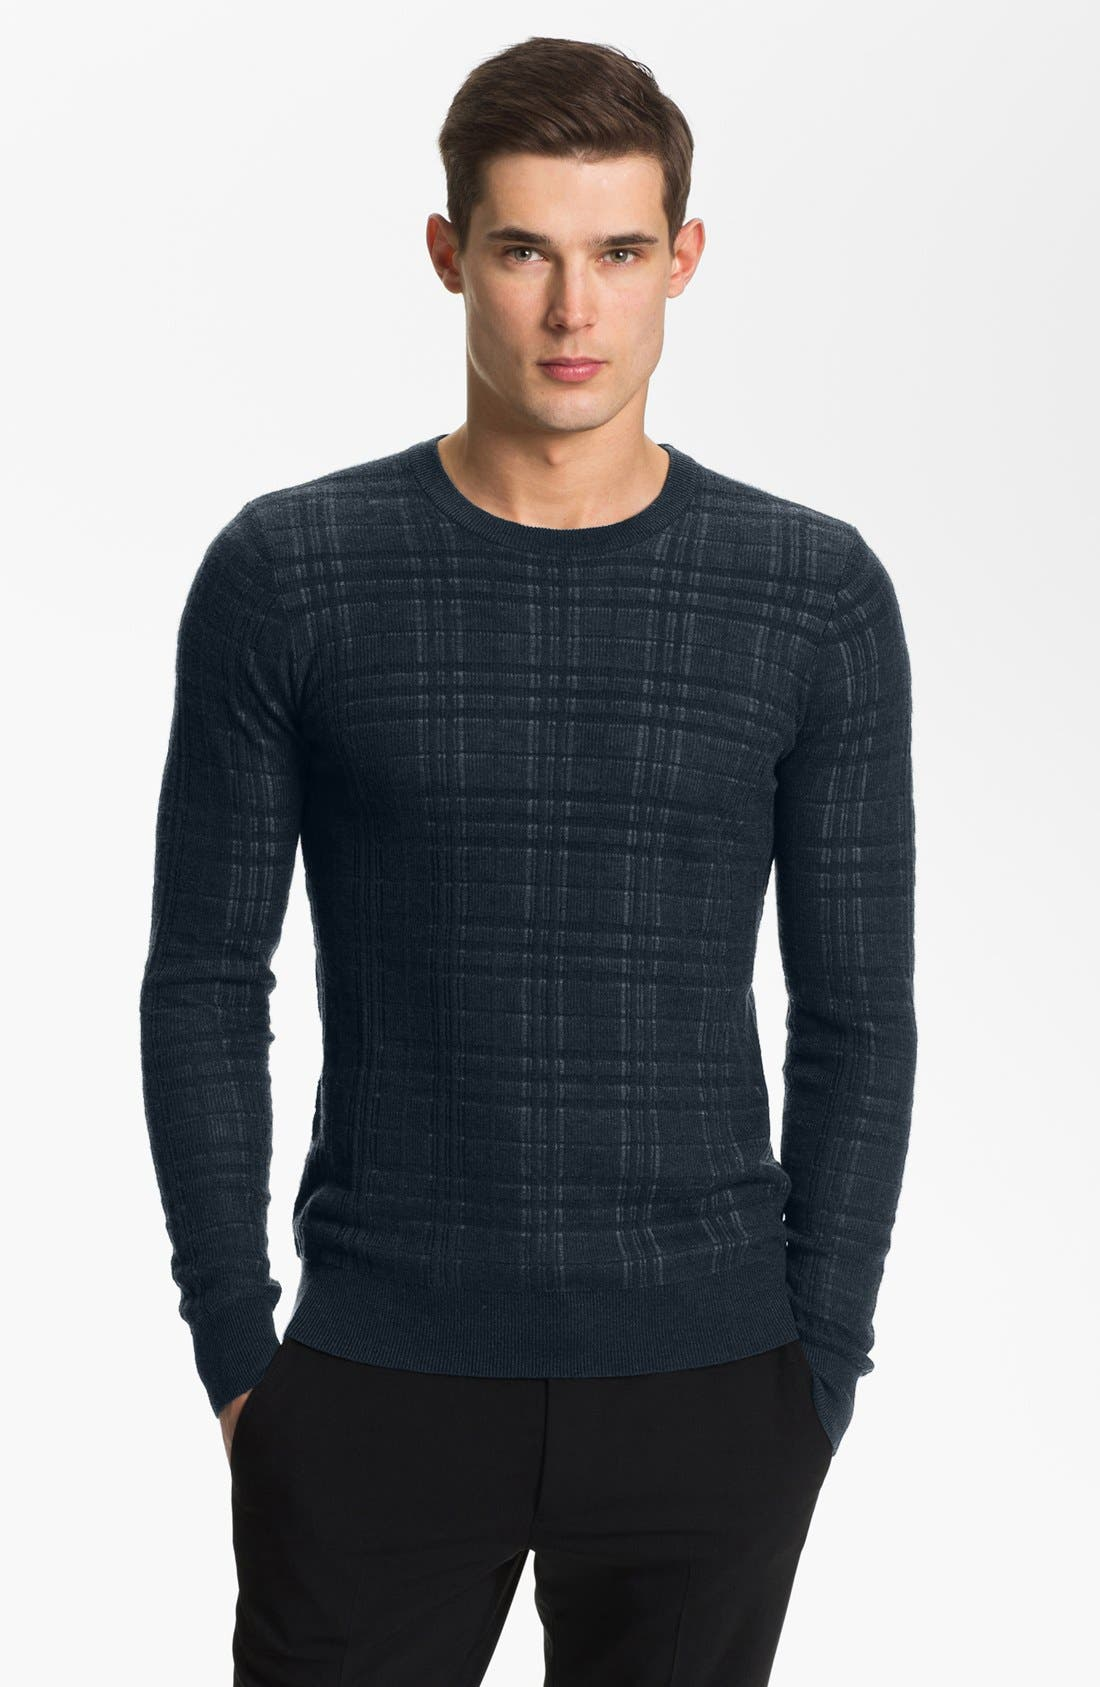 Alternate Image 1 Selected - Armani Collezioni Crewneck Knit Sweater